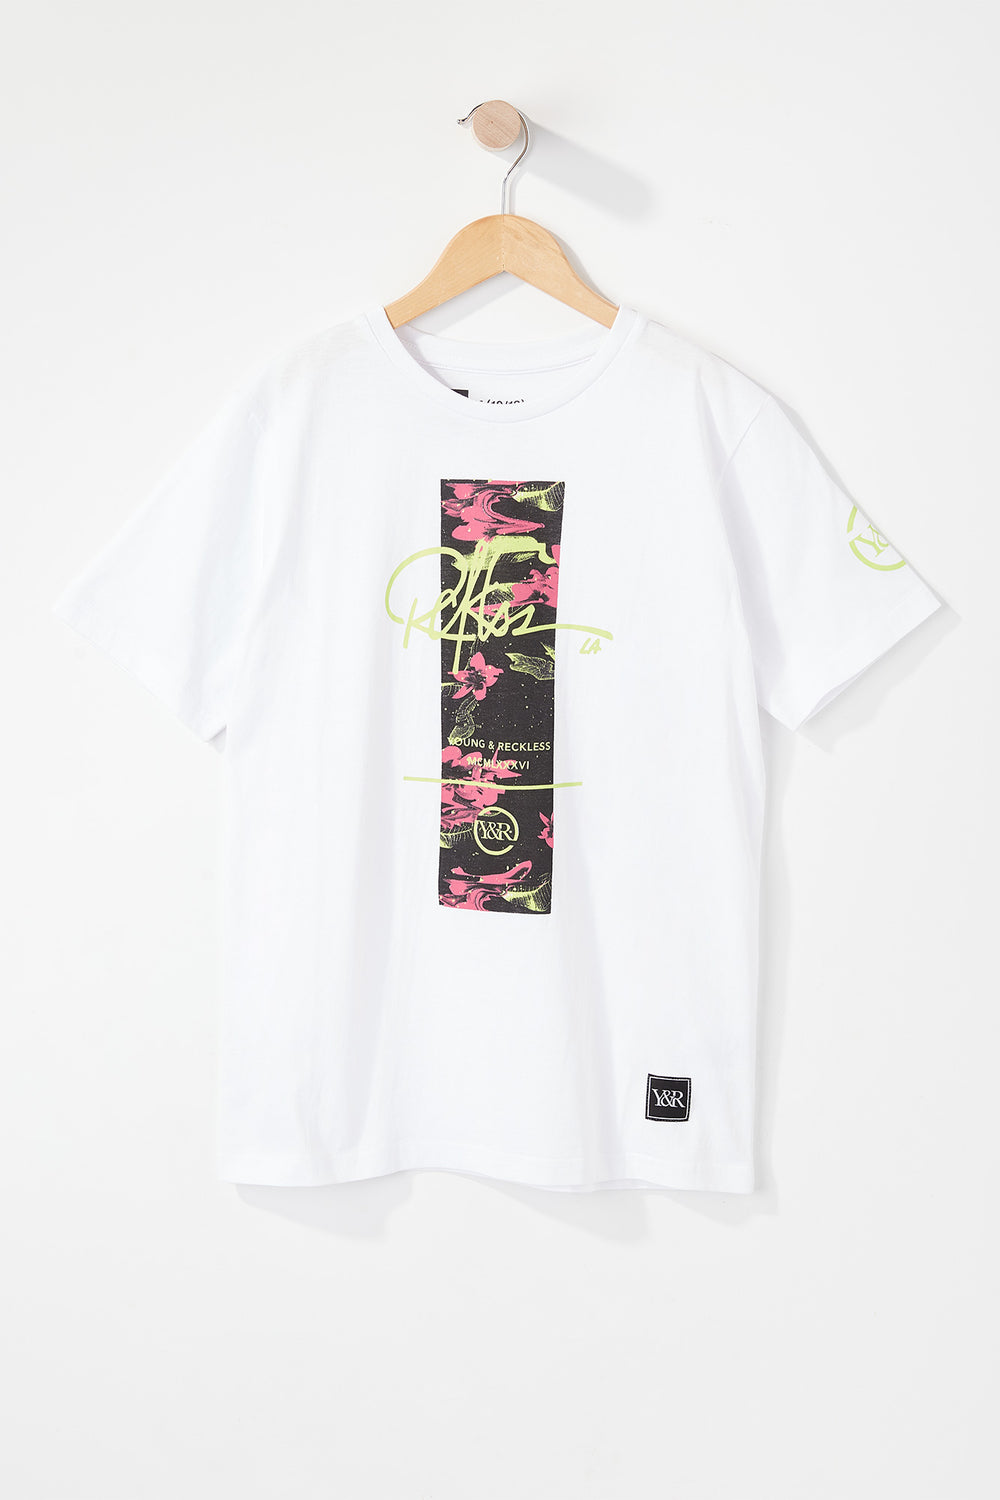 Young & Reckless Boys Electric Floral T-Shirt White